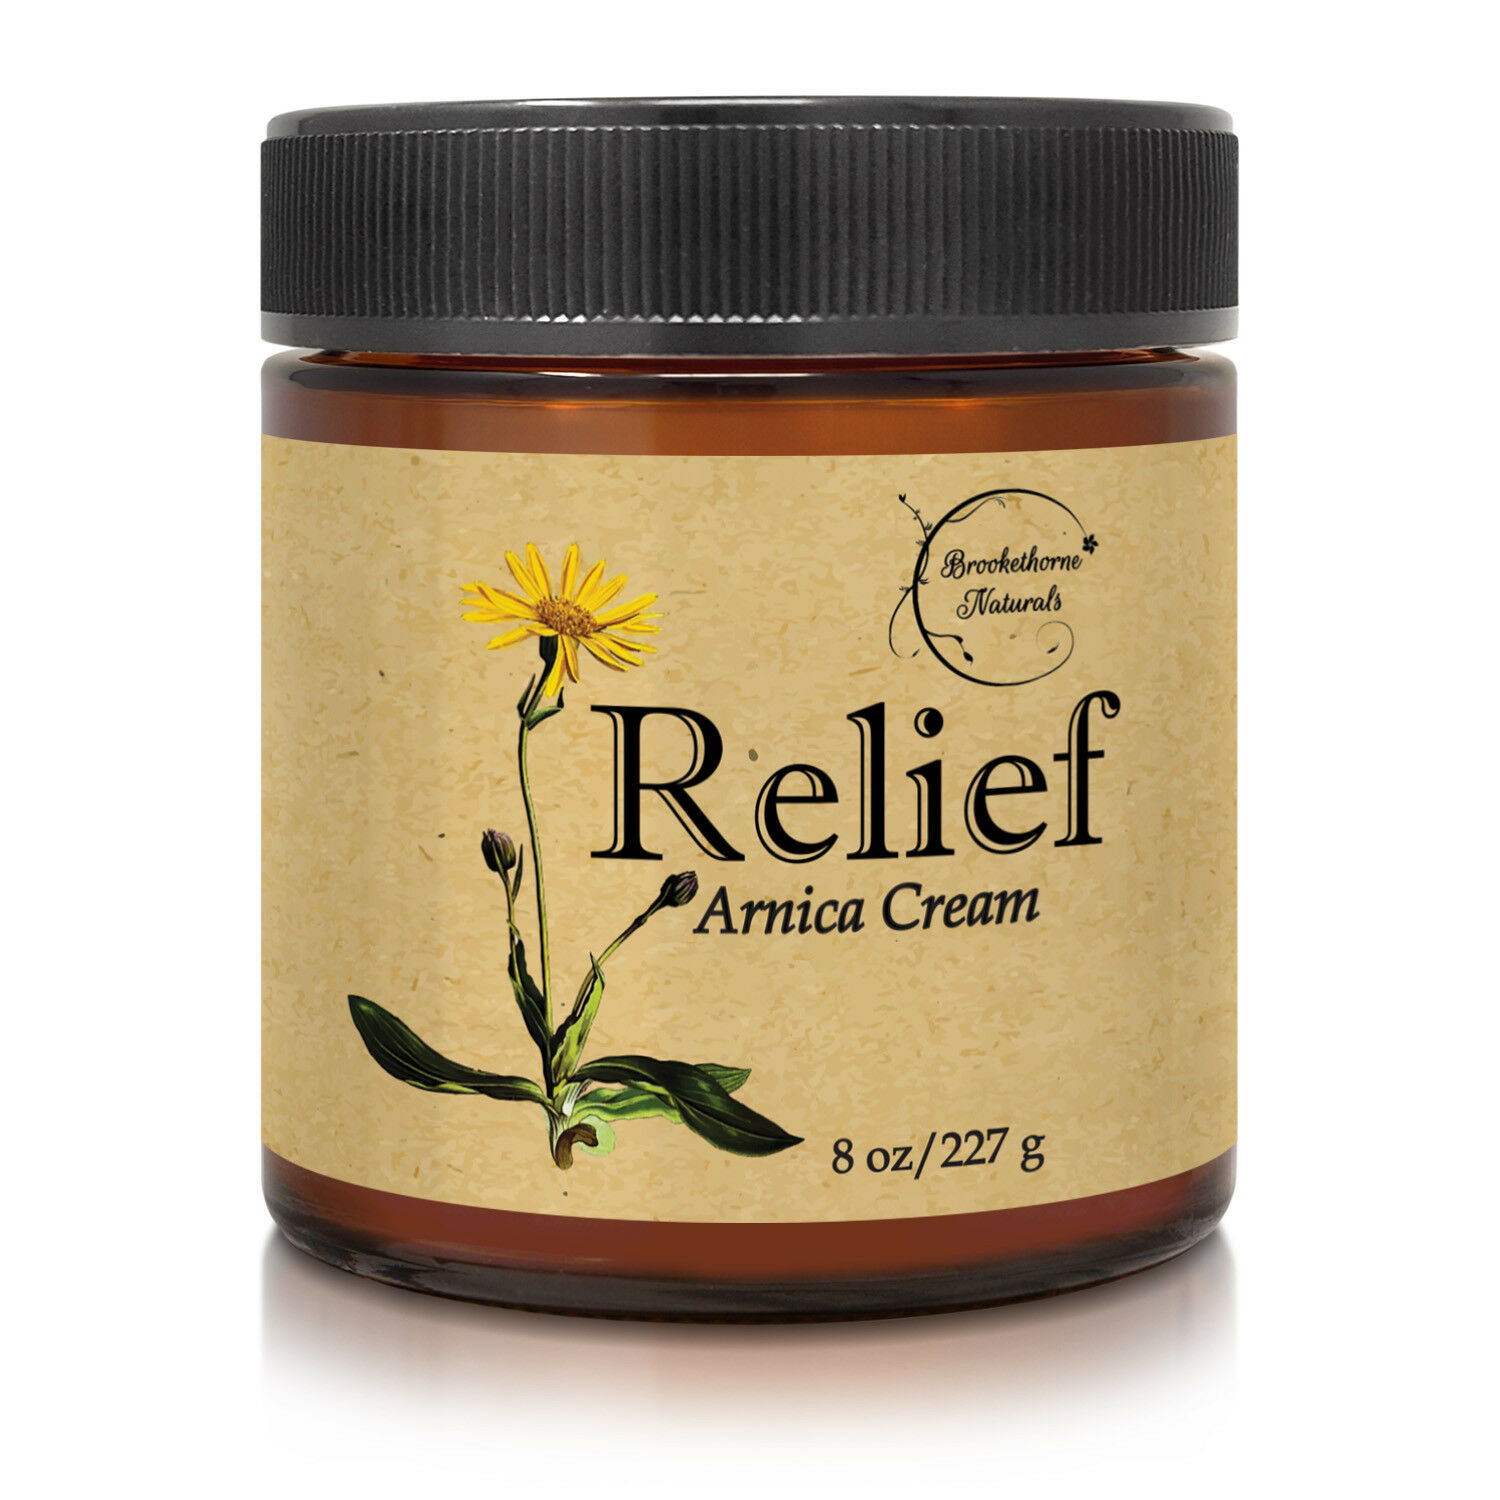 Relief Arnica Cream – Enriched with Lemongrass, Eucalyptus